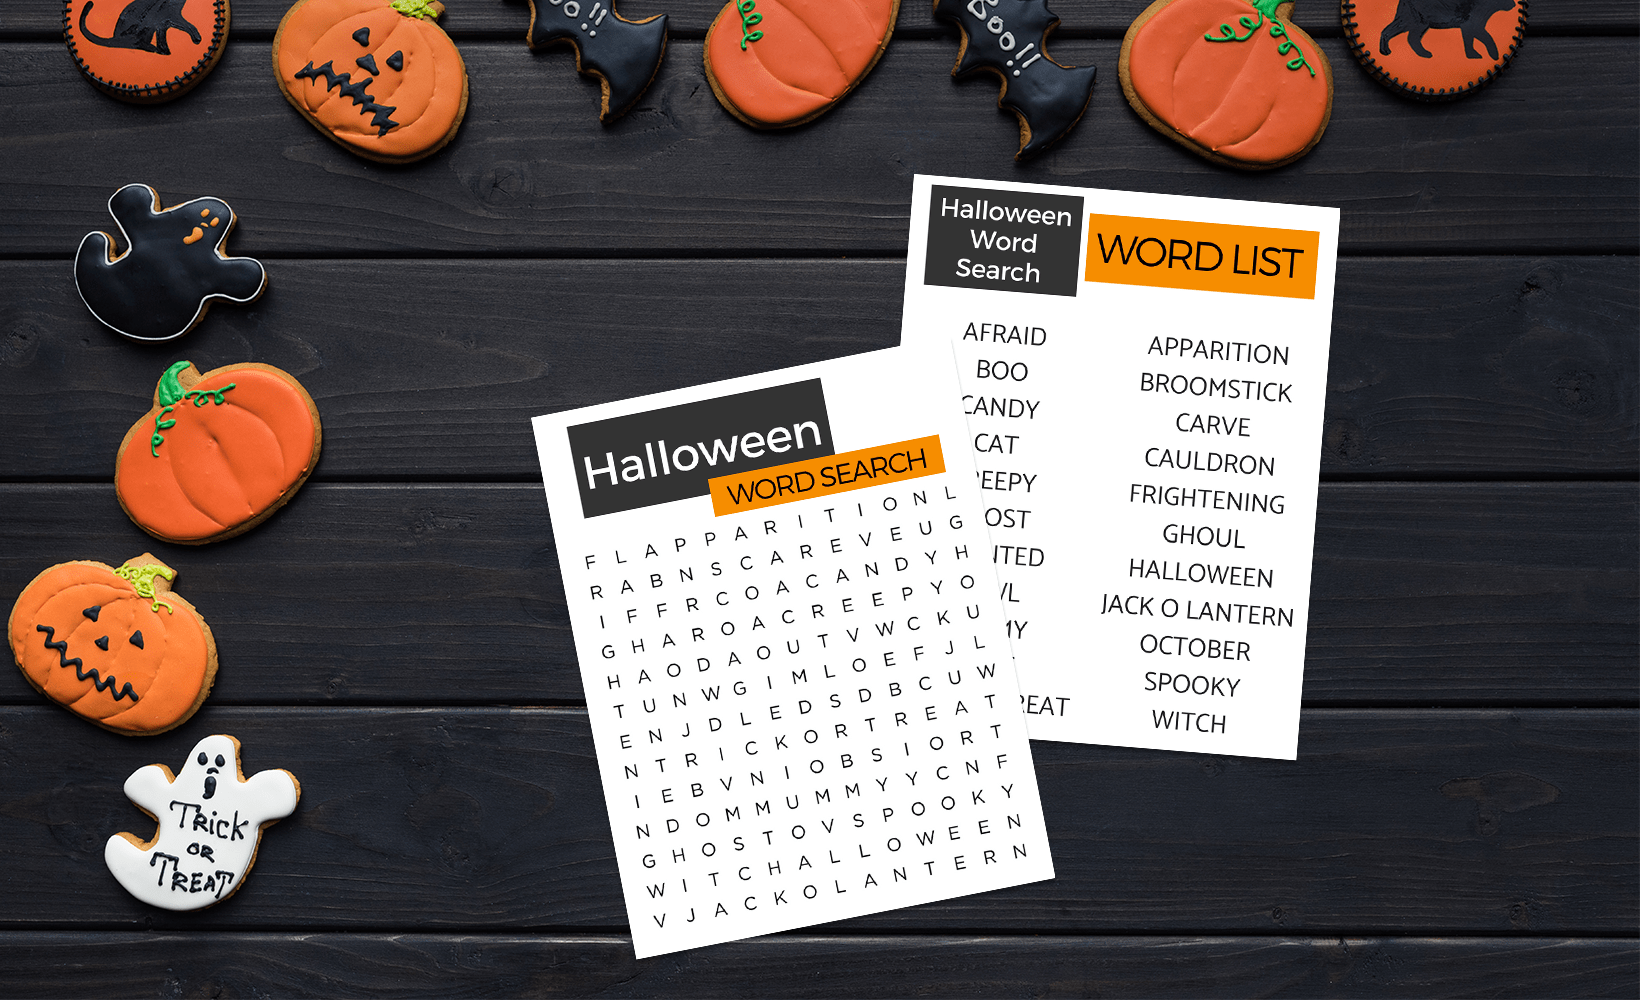 Halloween Word Search Printable For Seniors